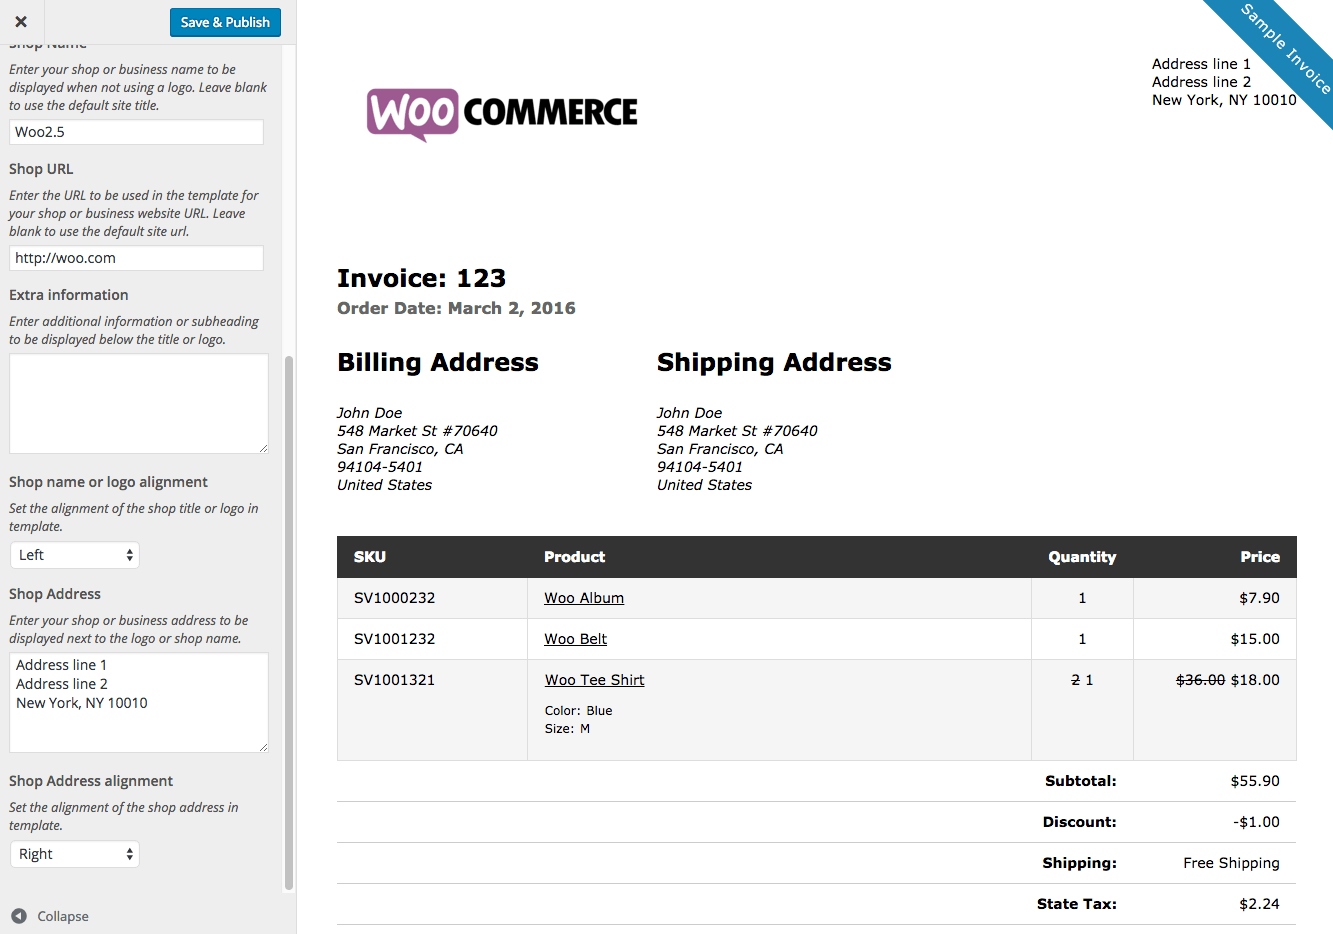 Soulfulpowerus  Personable Woocommerce Print Invoices Amp Packing Lists  Woocommerce Docs With Foxy Woocommerce Print Invoices  Packing Lists Customizer With Extraordinary Receipt For Pizza Dough Also Template Of Receipt In Addition Pound Cake Receipt And How To Write A Receipt Letter As Well As Fake Restaurant Receipts Additionally Dock Receipt Template From Docswoocommercecom With Soulfulpowerus  Foxy Woocommerce Print Invoices Amp Packing Lists  Woocommerce Docs With Extraordinary Woocommerce Print Invoices  Packing Lists Customizer And Personable Receipt For Pizza Dough Also Template Of Receipt In Addition Pound Cake Receipt From Docswoocommercecom